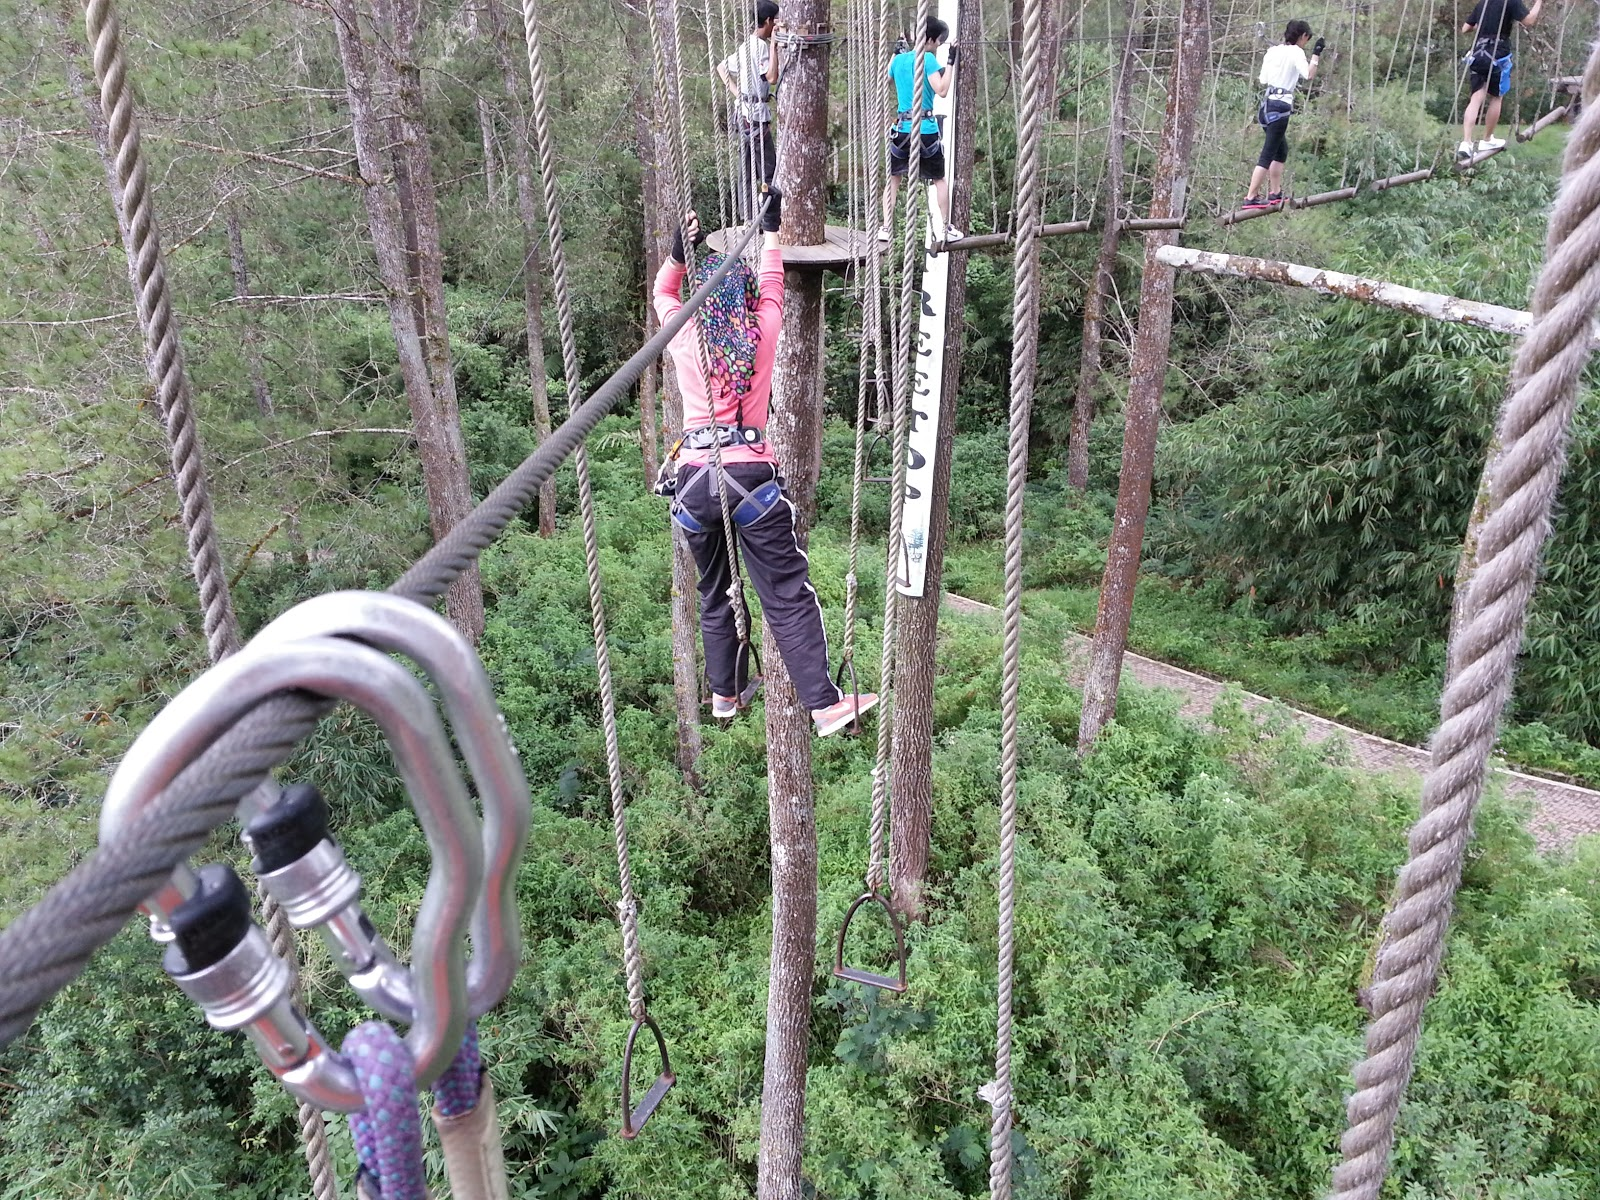 3 Recreational Theme Parks To Visit In Bandung